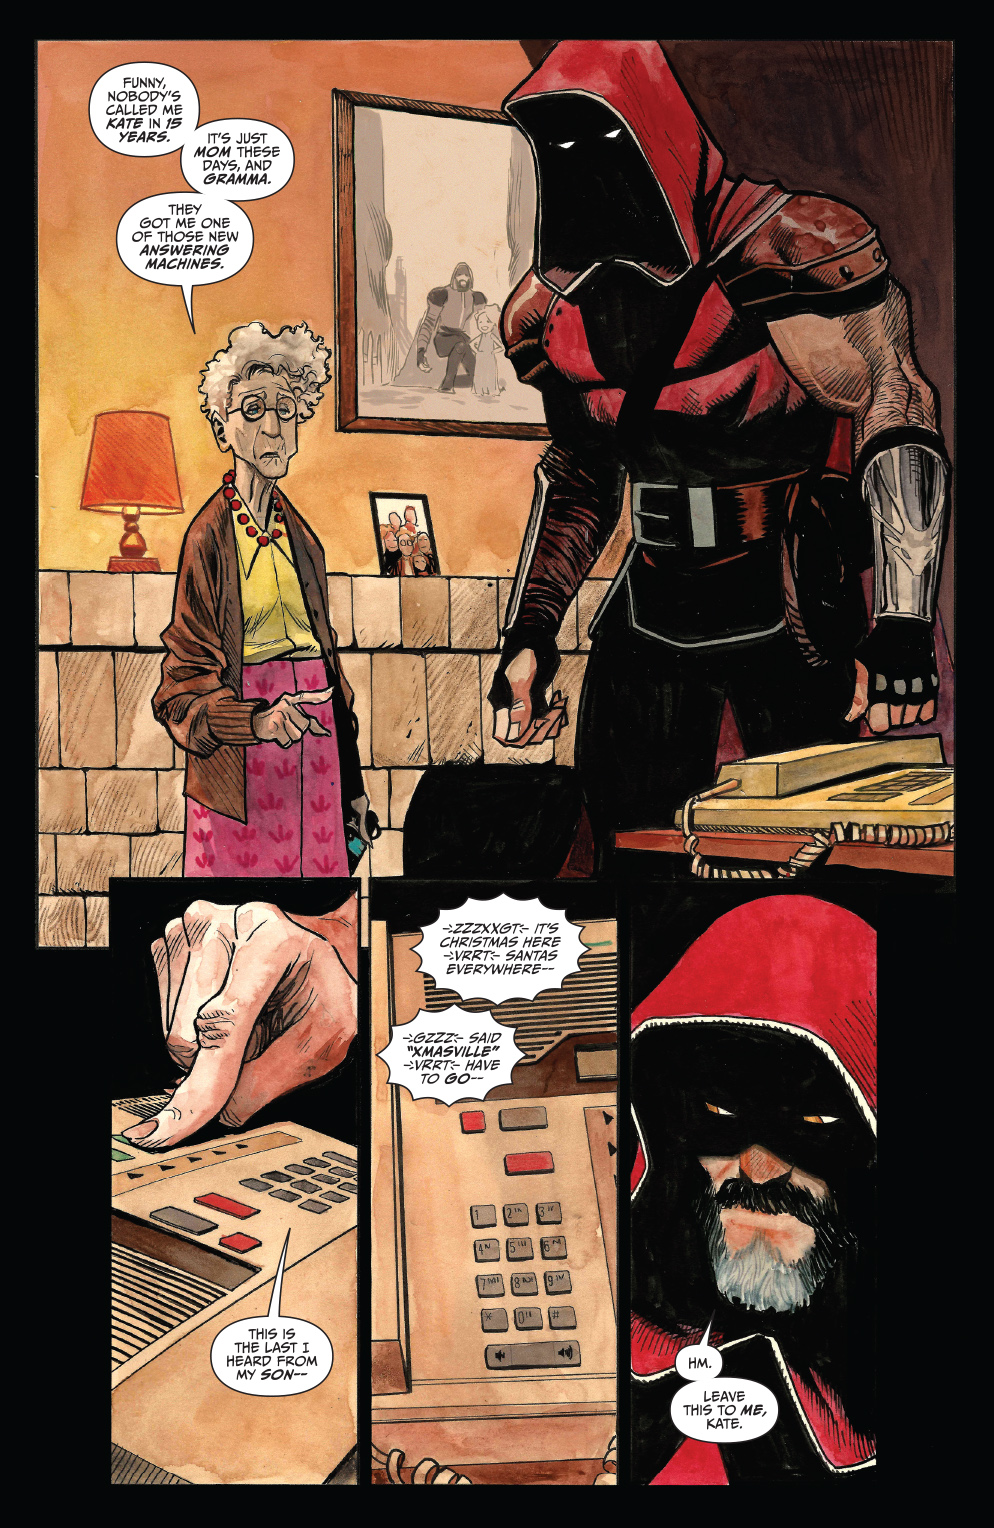 Klaus_Crisis_in_Xmasville_001_Preview_2